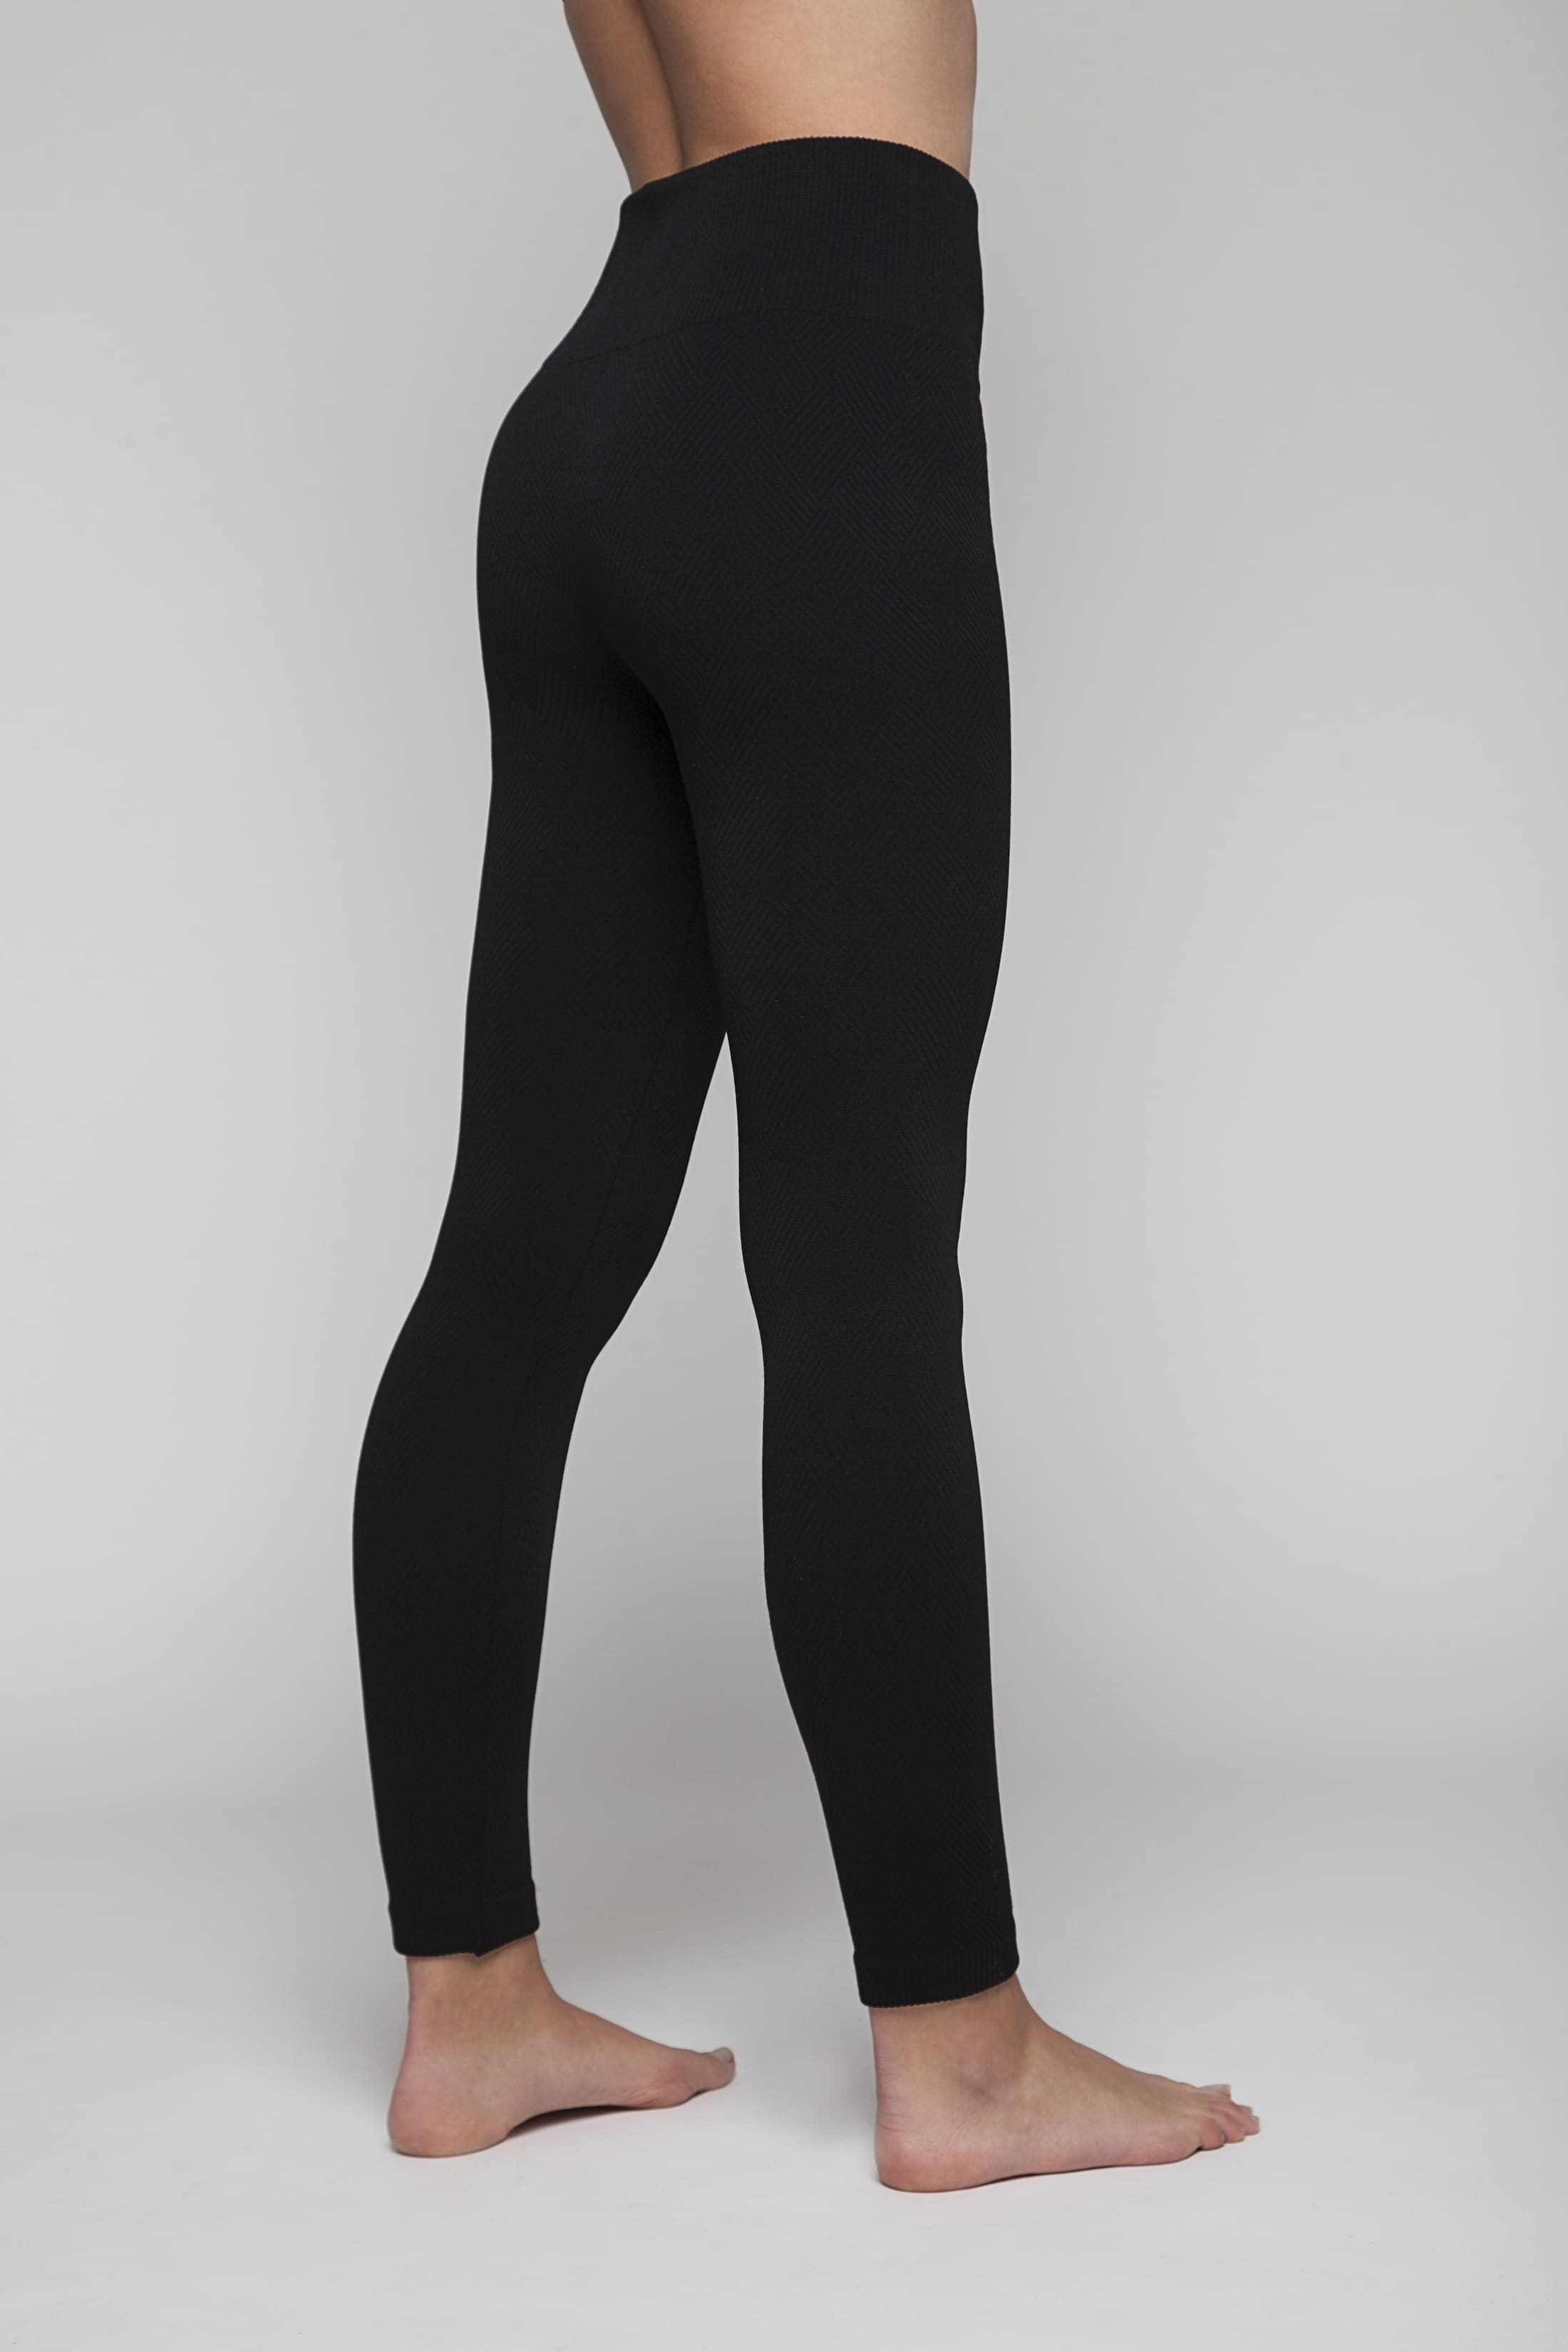 Black extra-soft leggings (structured)